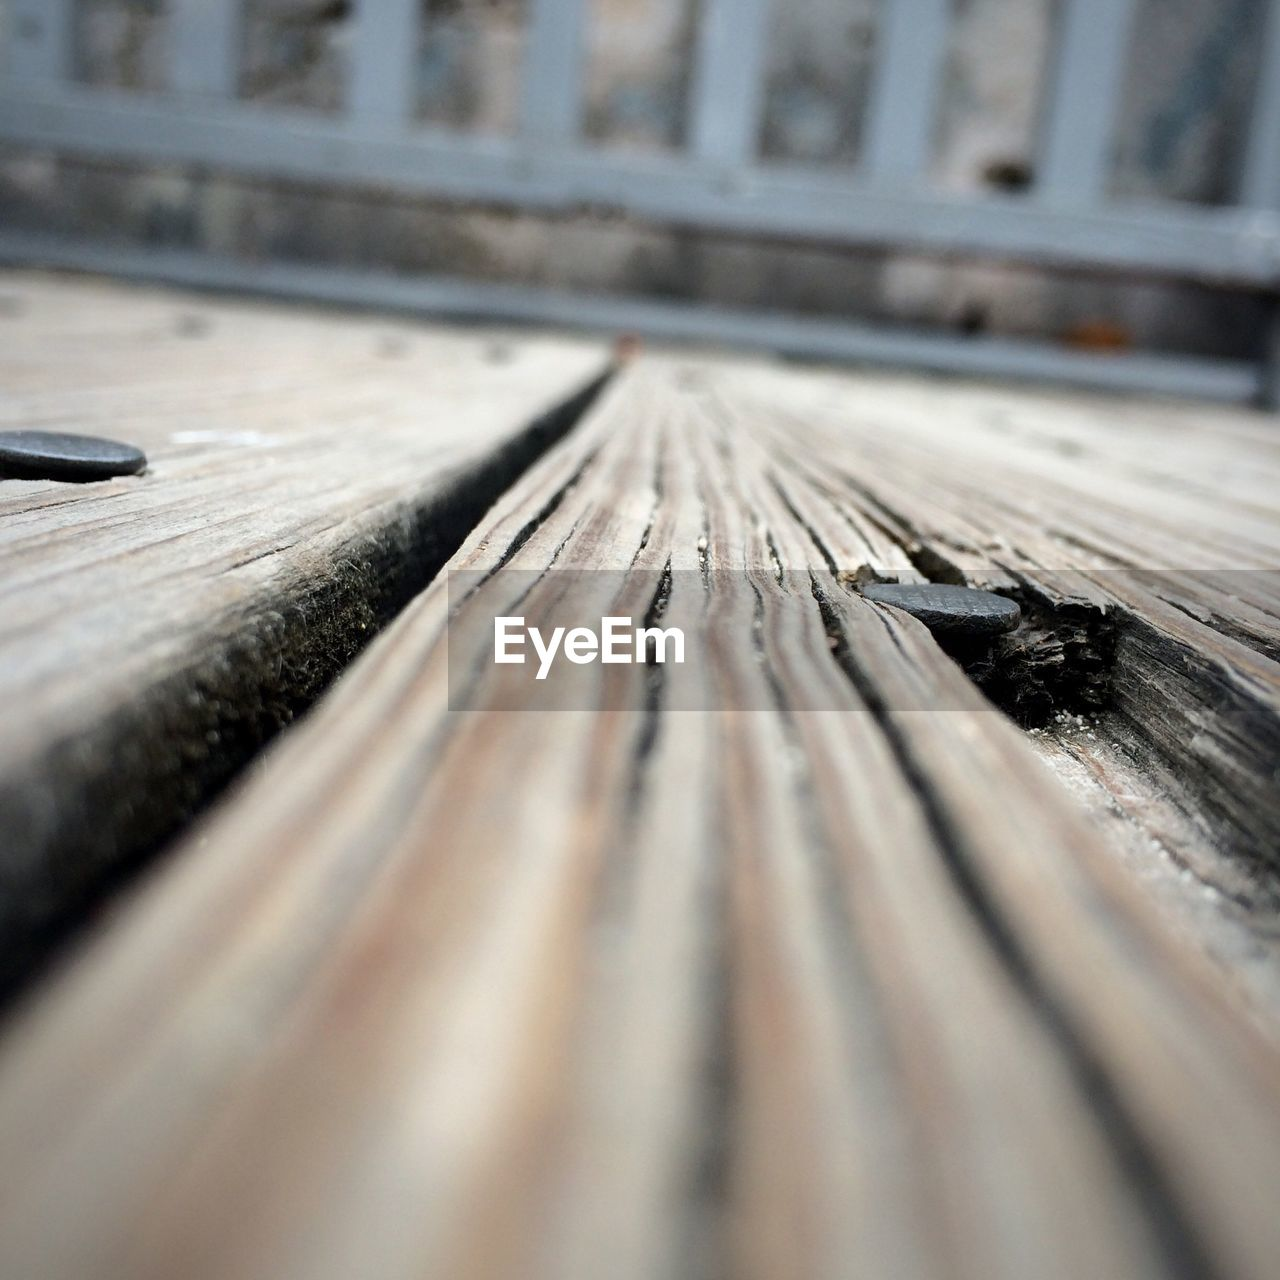 Surface Level Of Wooden Bench